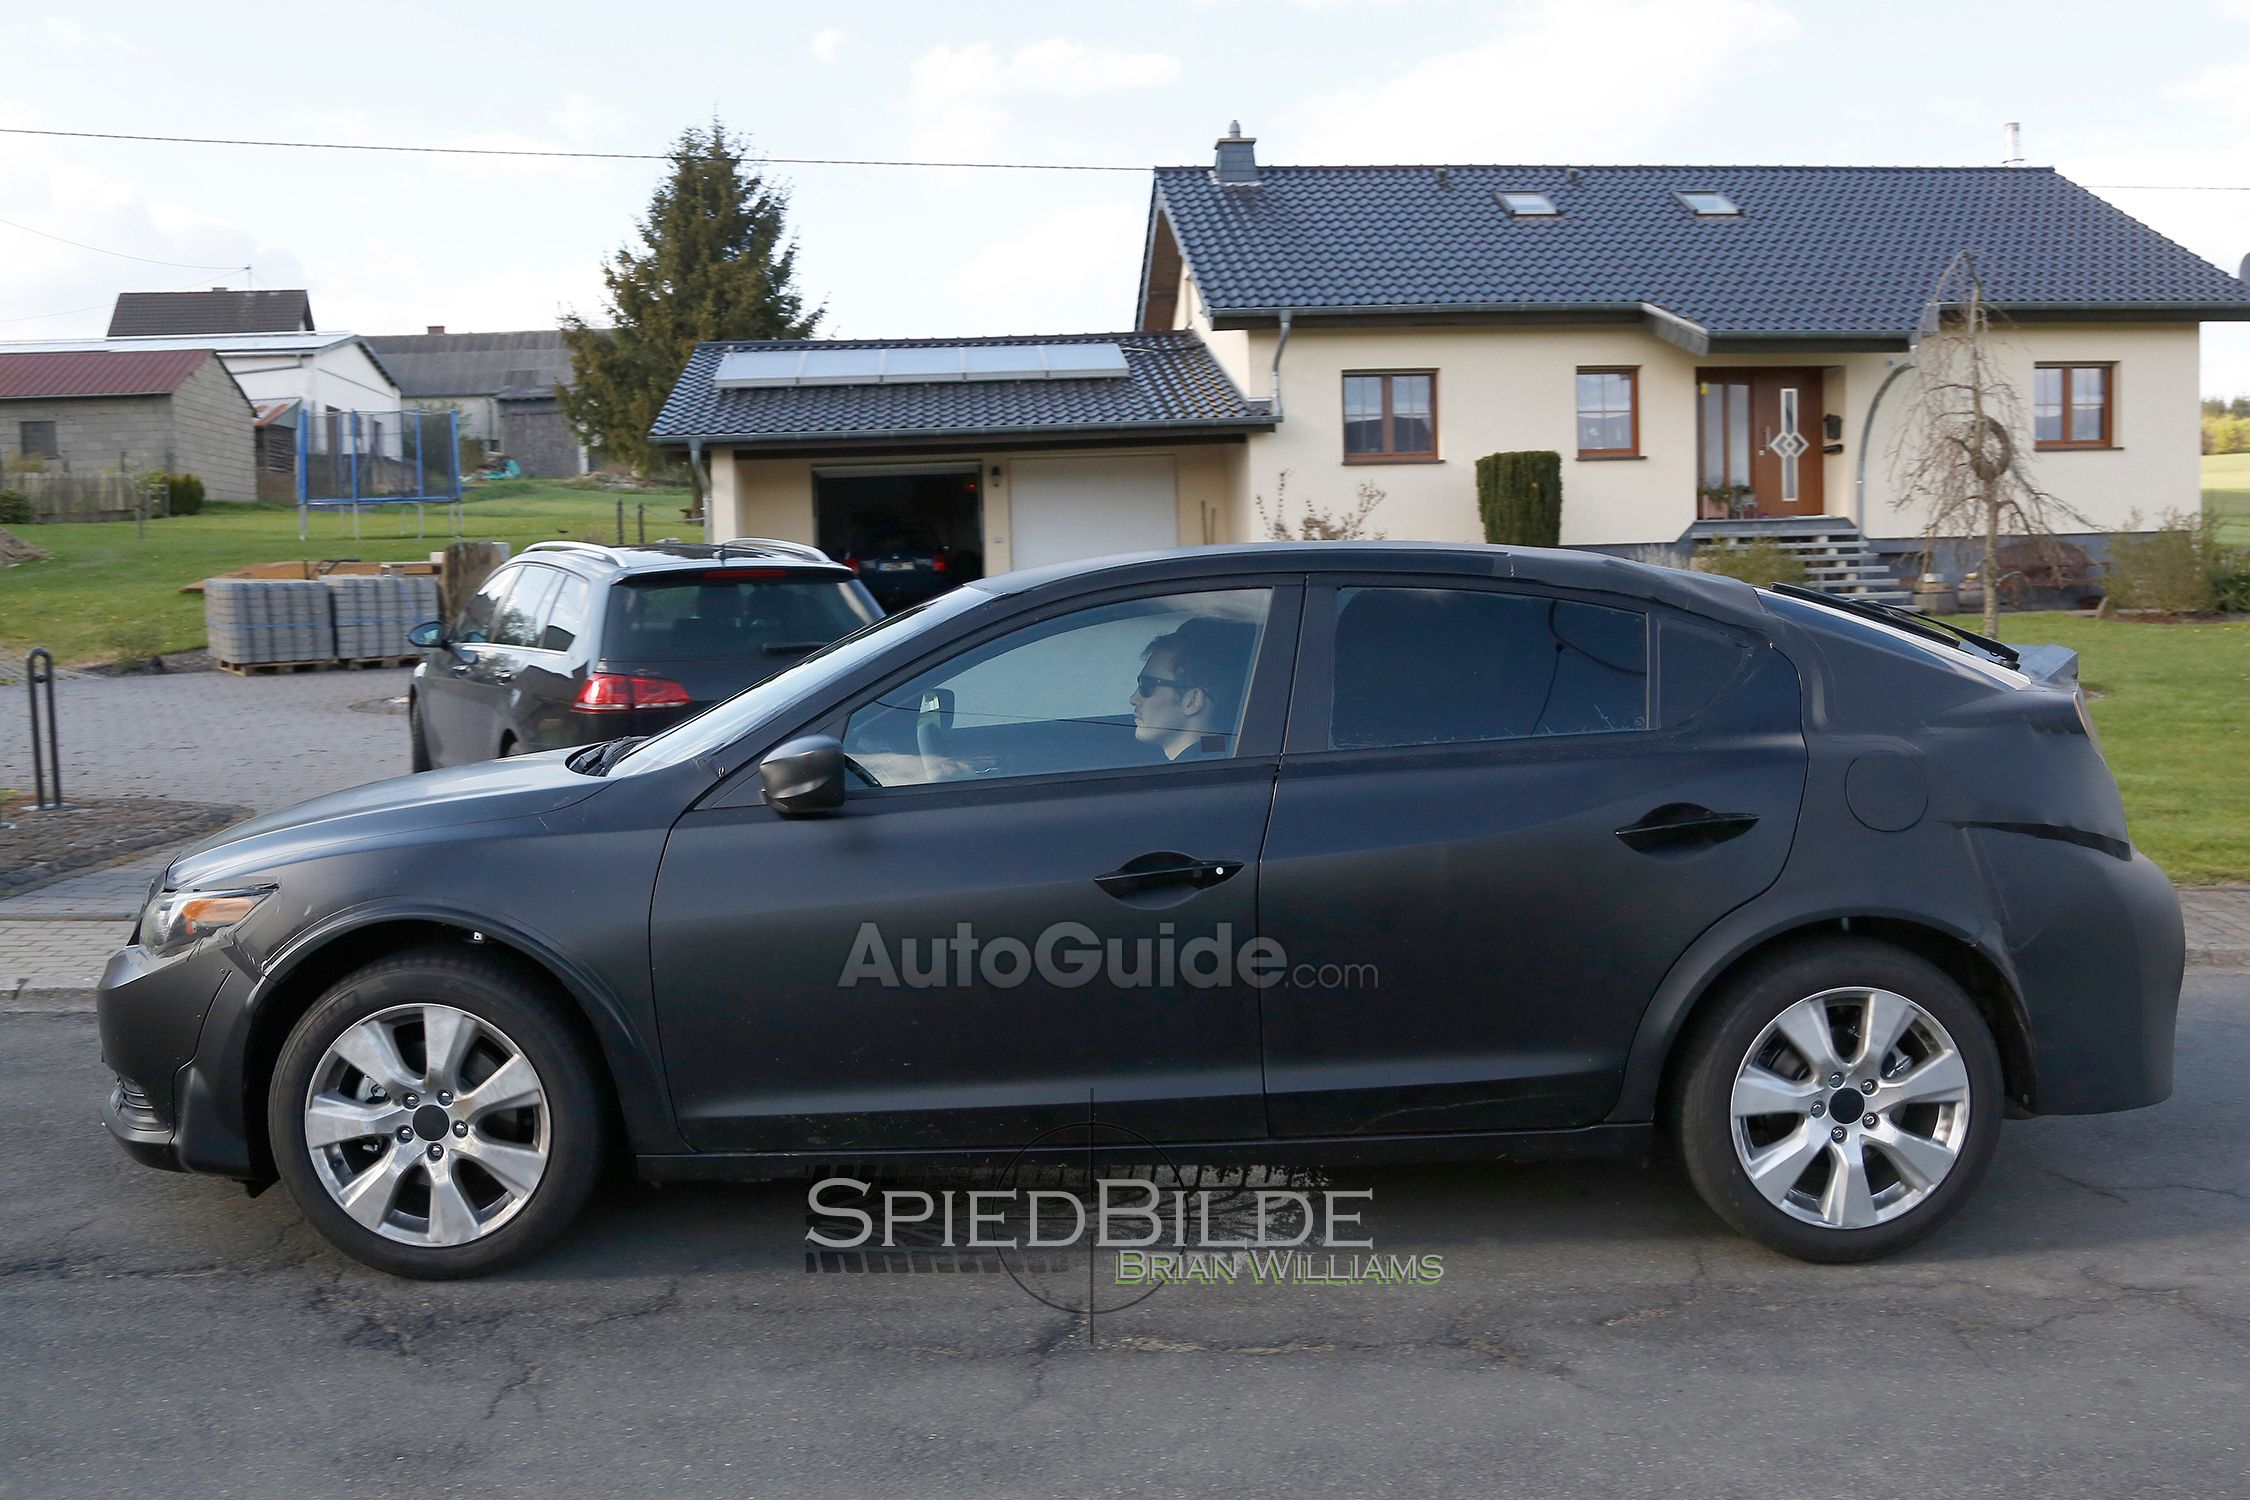 2016 honda civic hatchback mule spotted in germany 10th gen civic forum